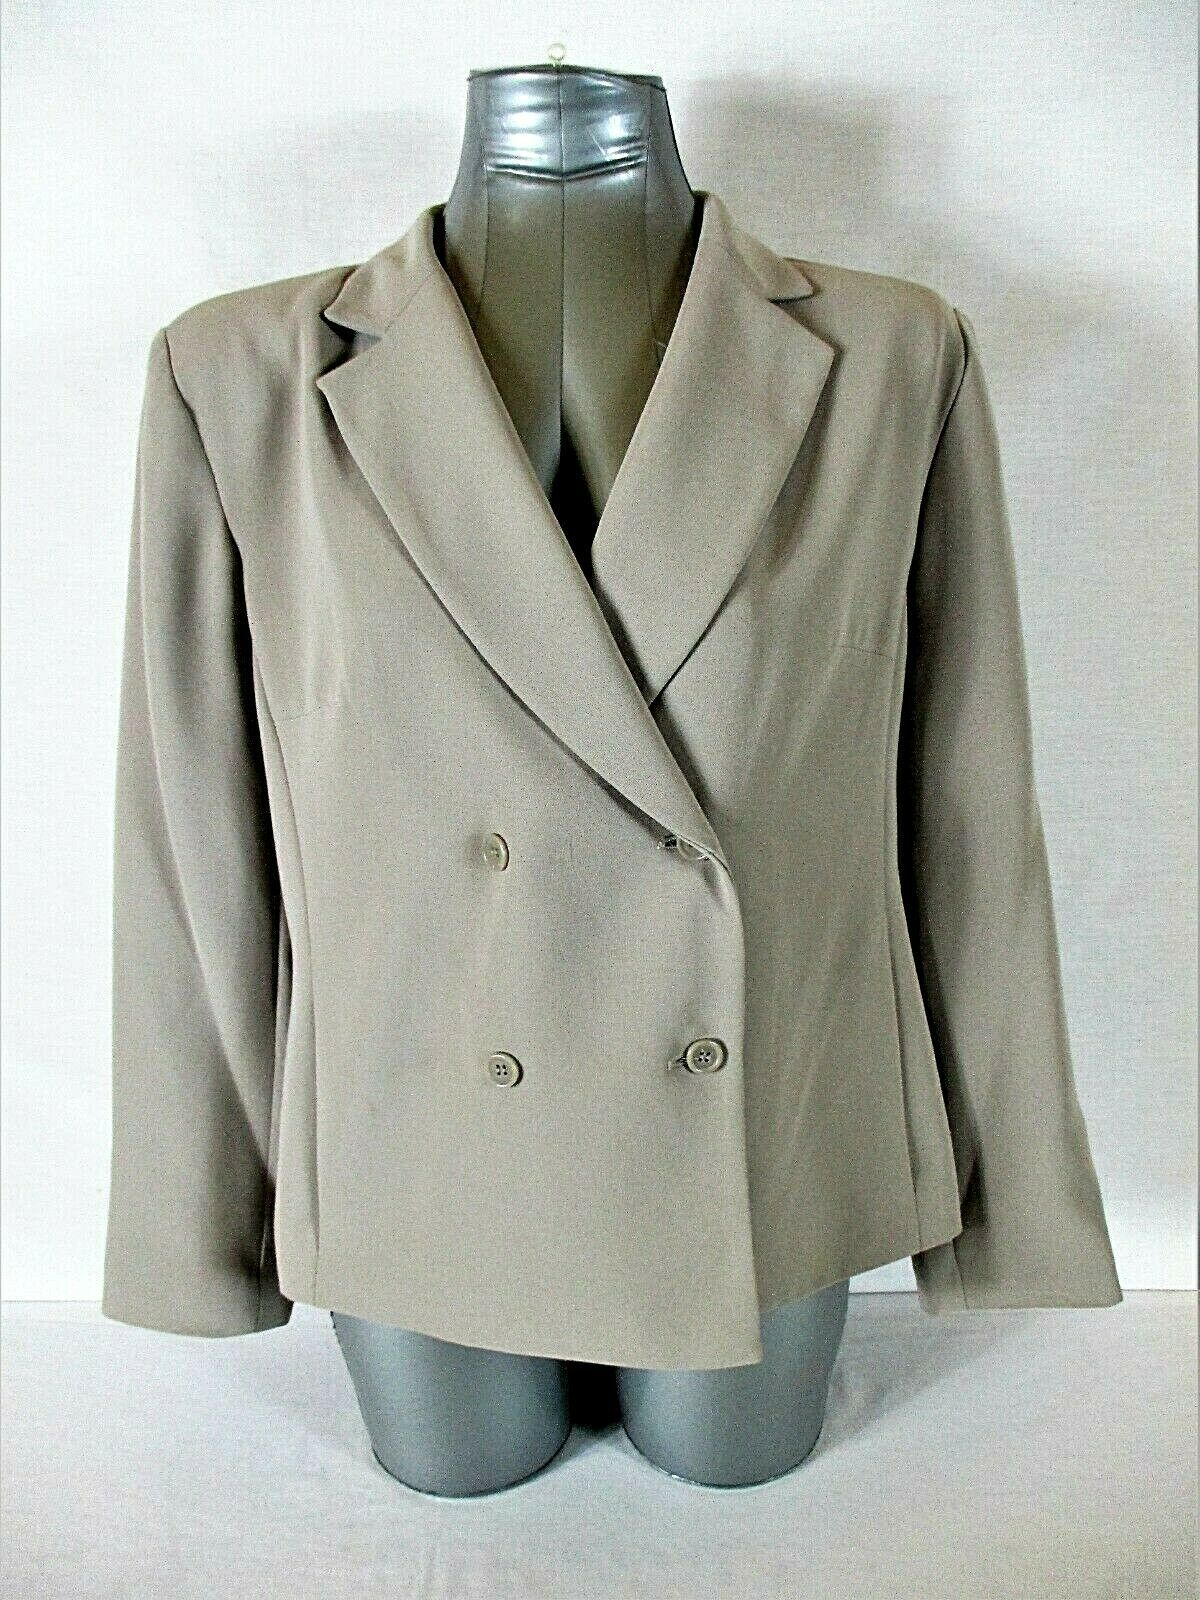 LAURA SCOTT womens 12P L/S taupe DOUBLE BREASTED suit jacket (A6)